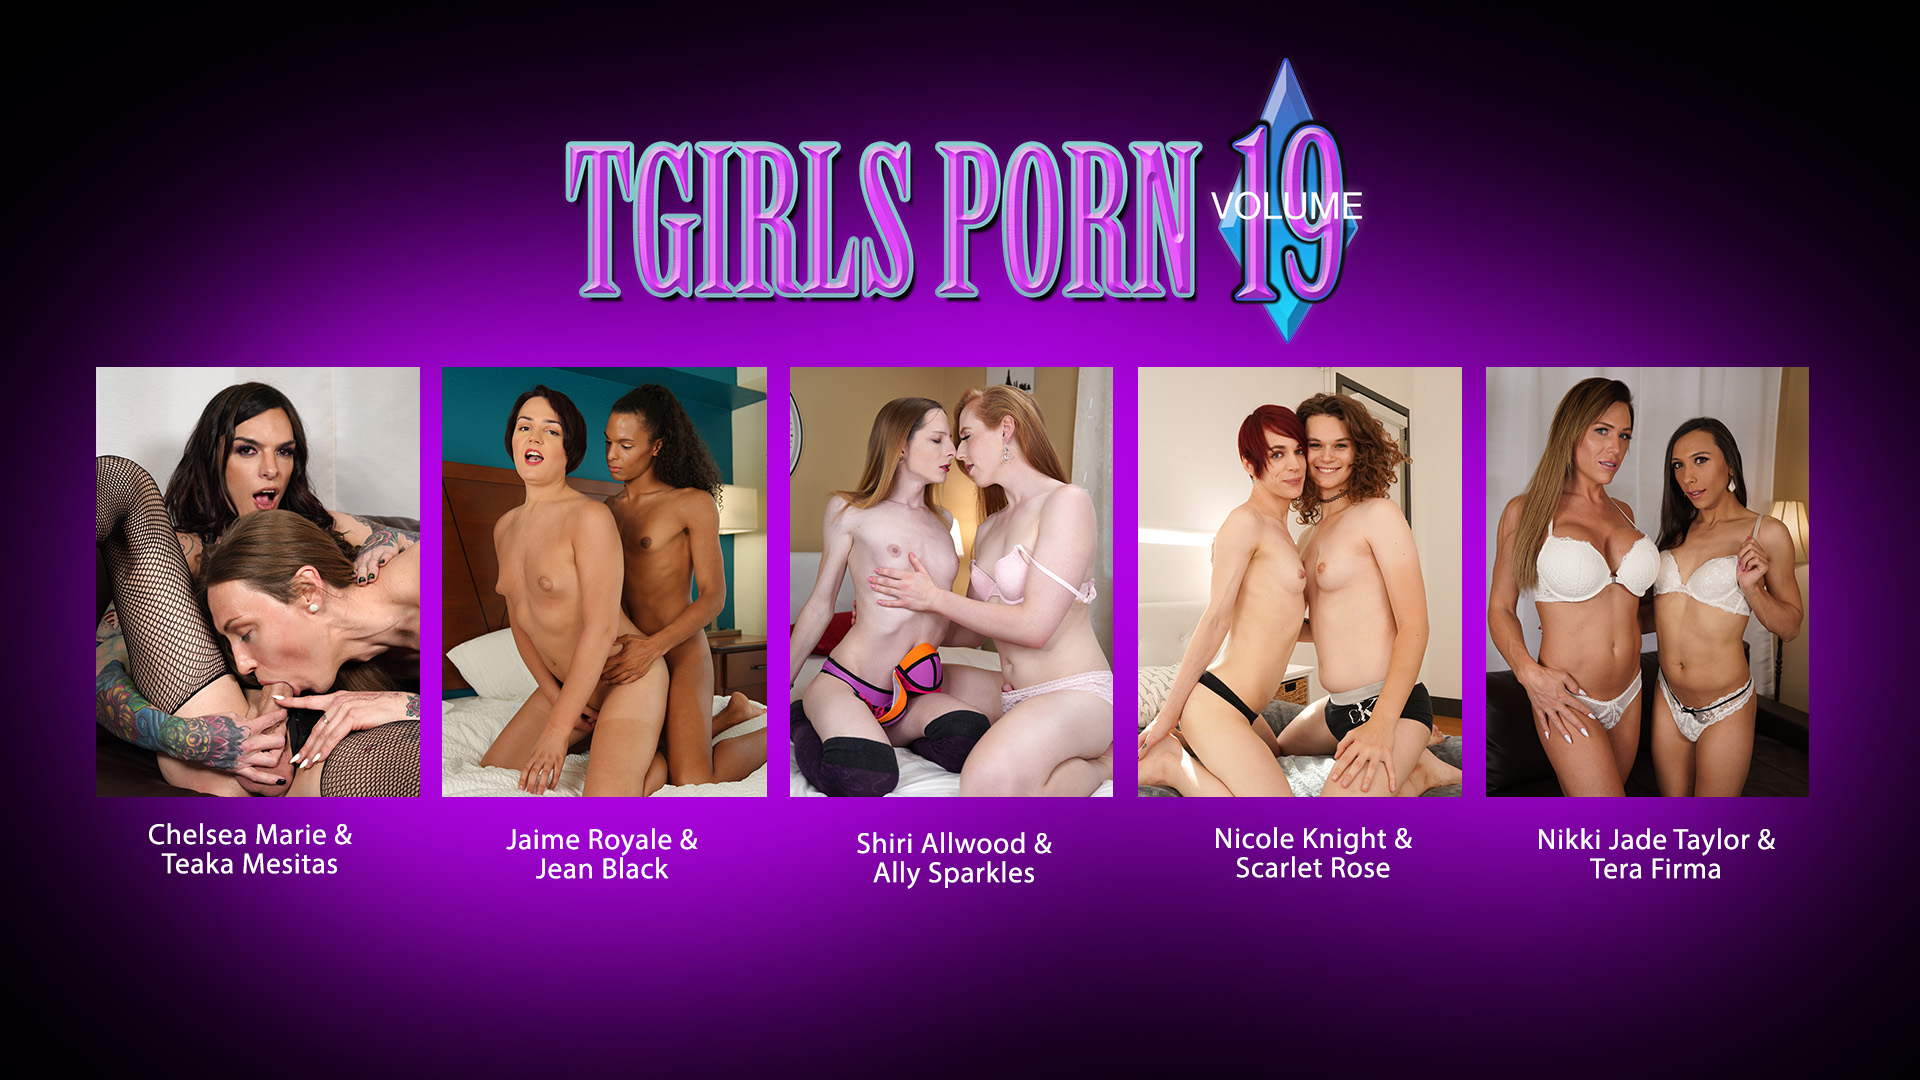 Tgirls Porn Volume 19 DVD Trailer